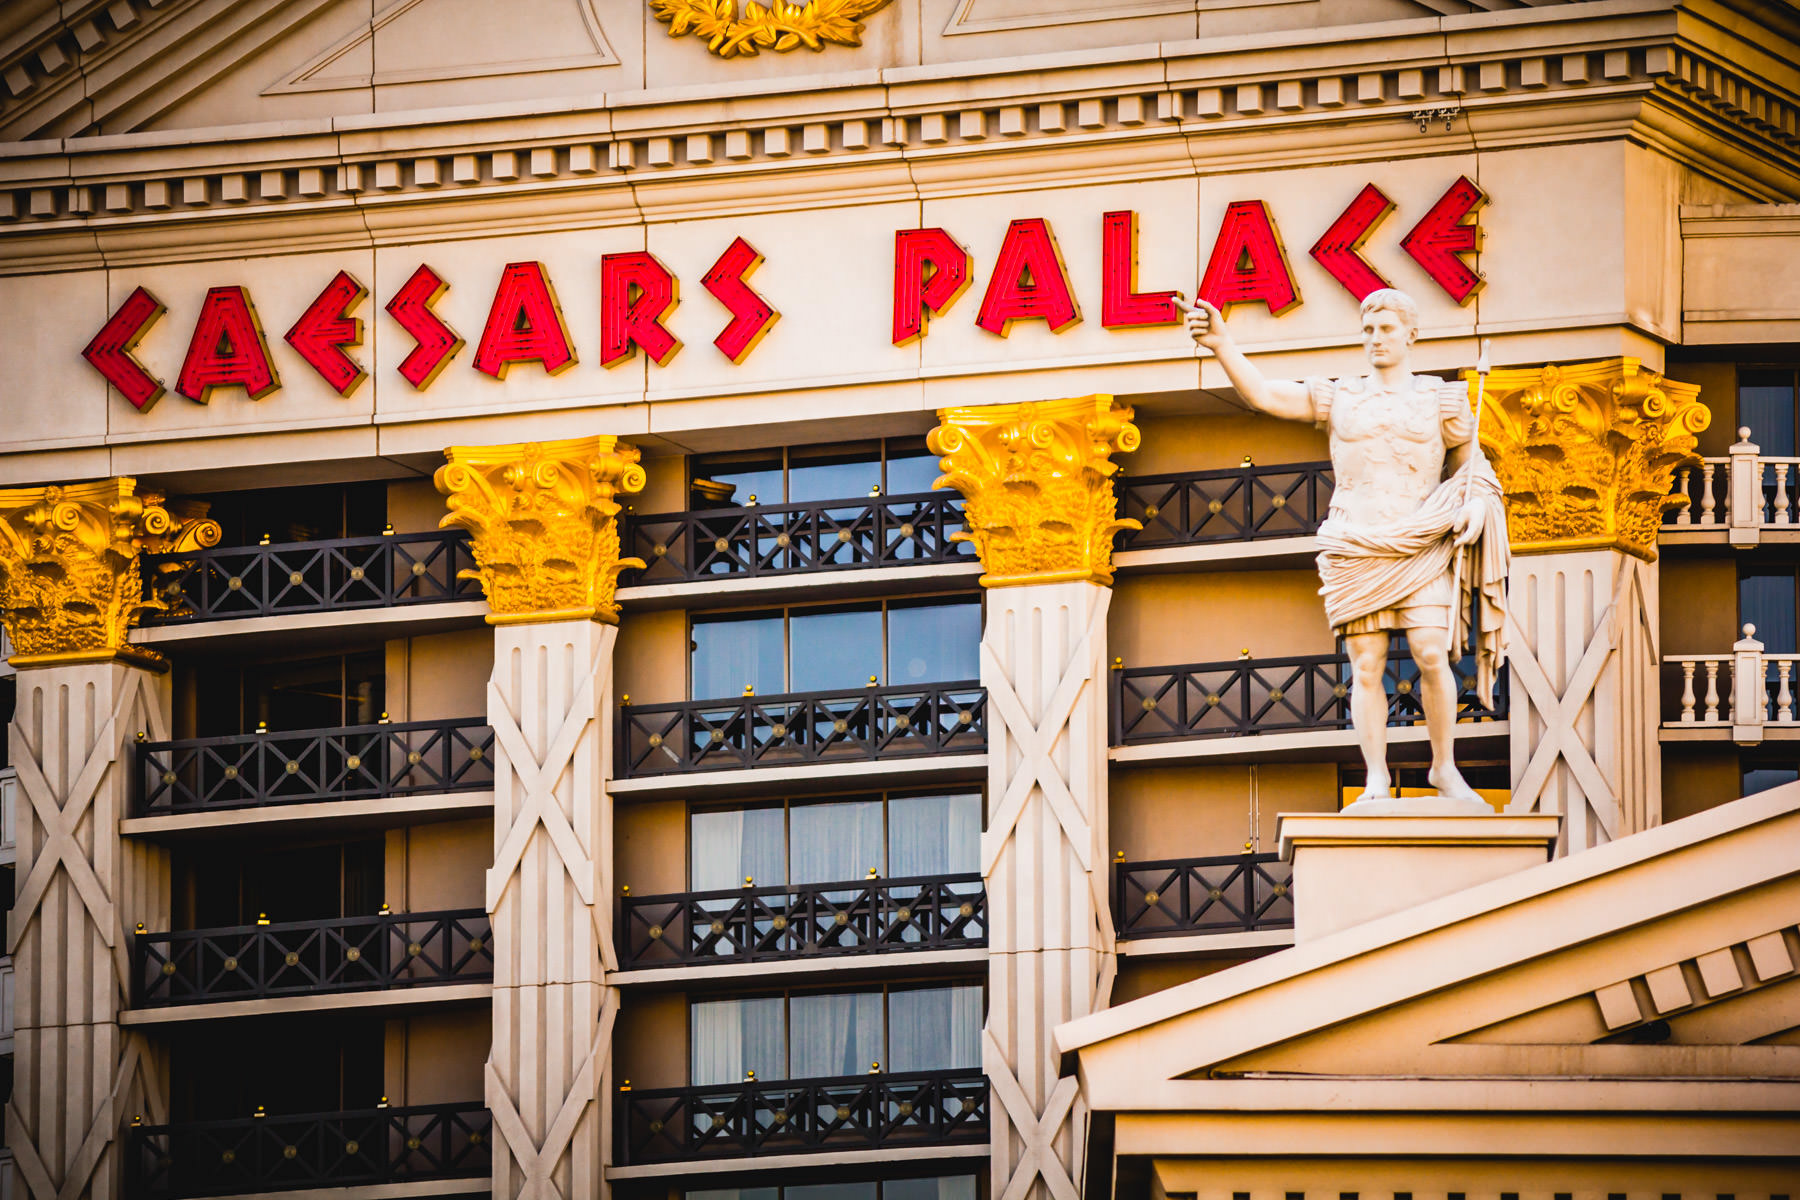 A statue outside of Las Vegas' Caesars Palace seems to point at the resort's sign on one of its guest room towers.